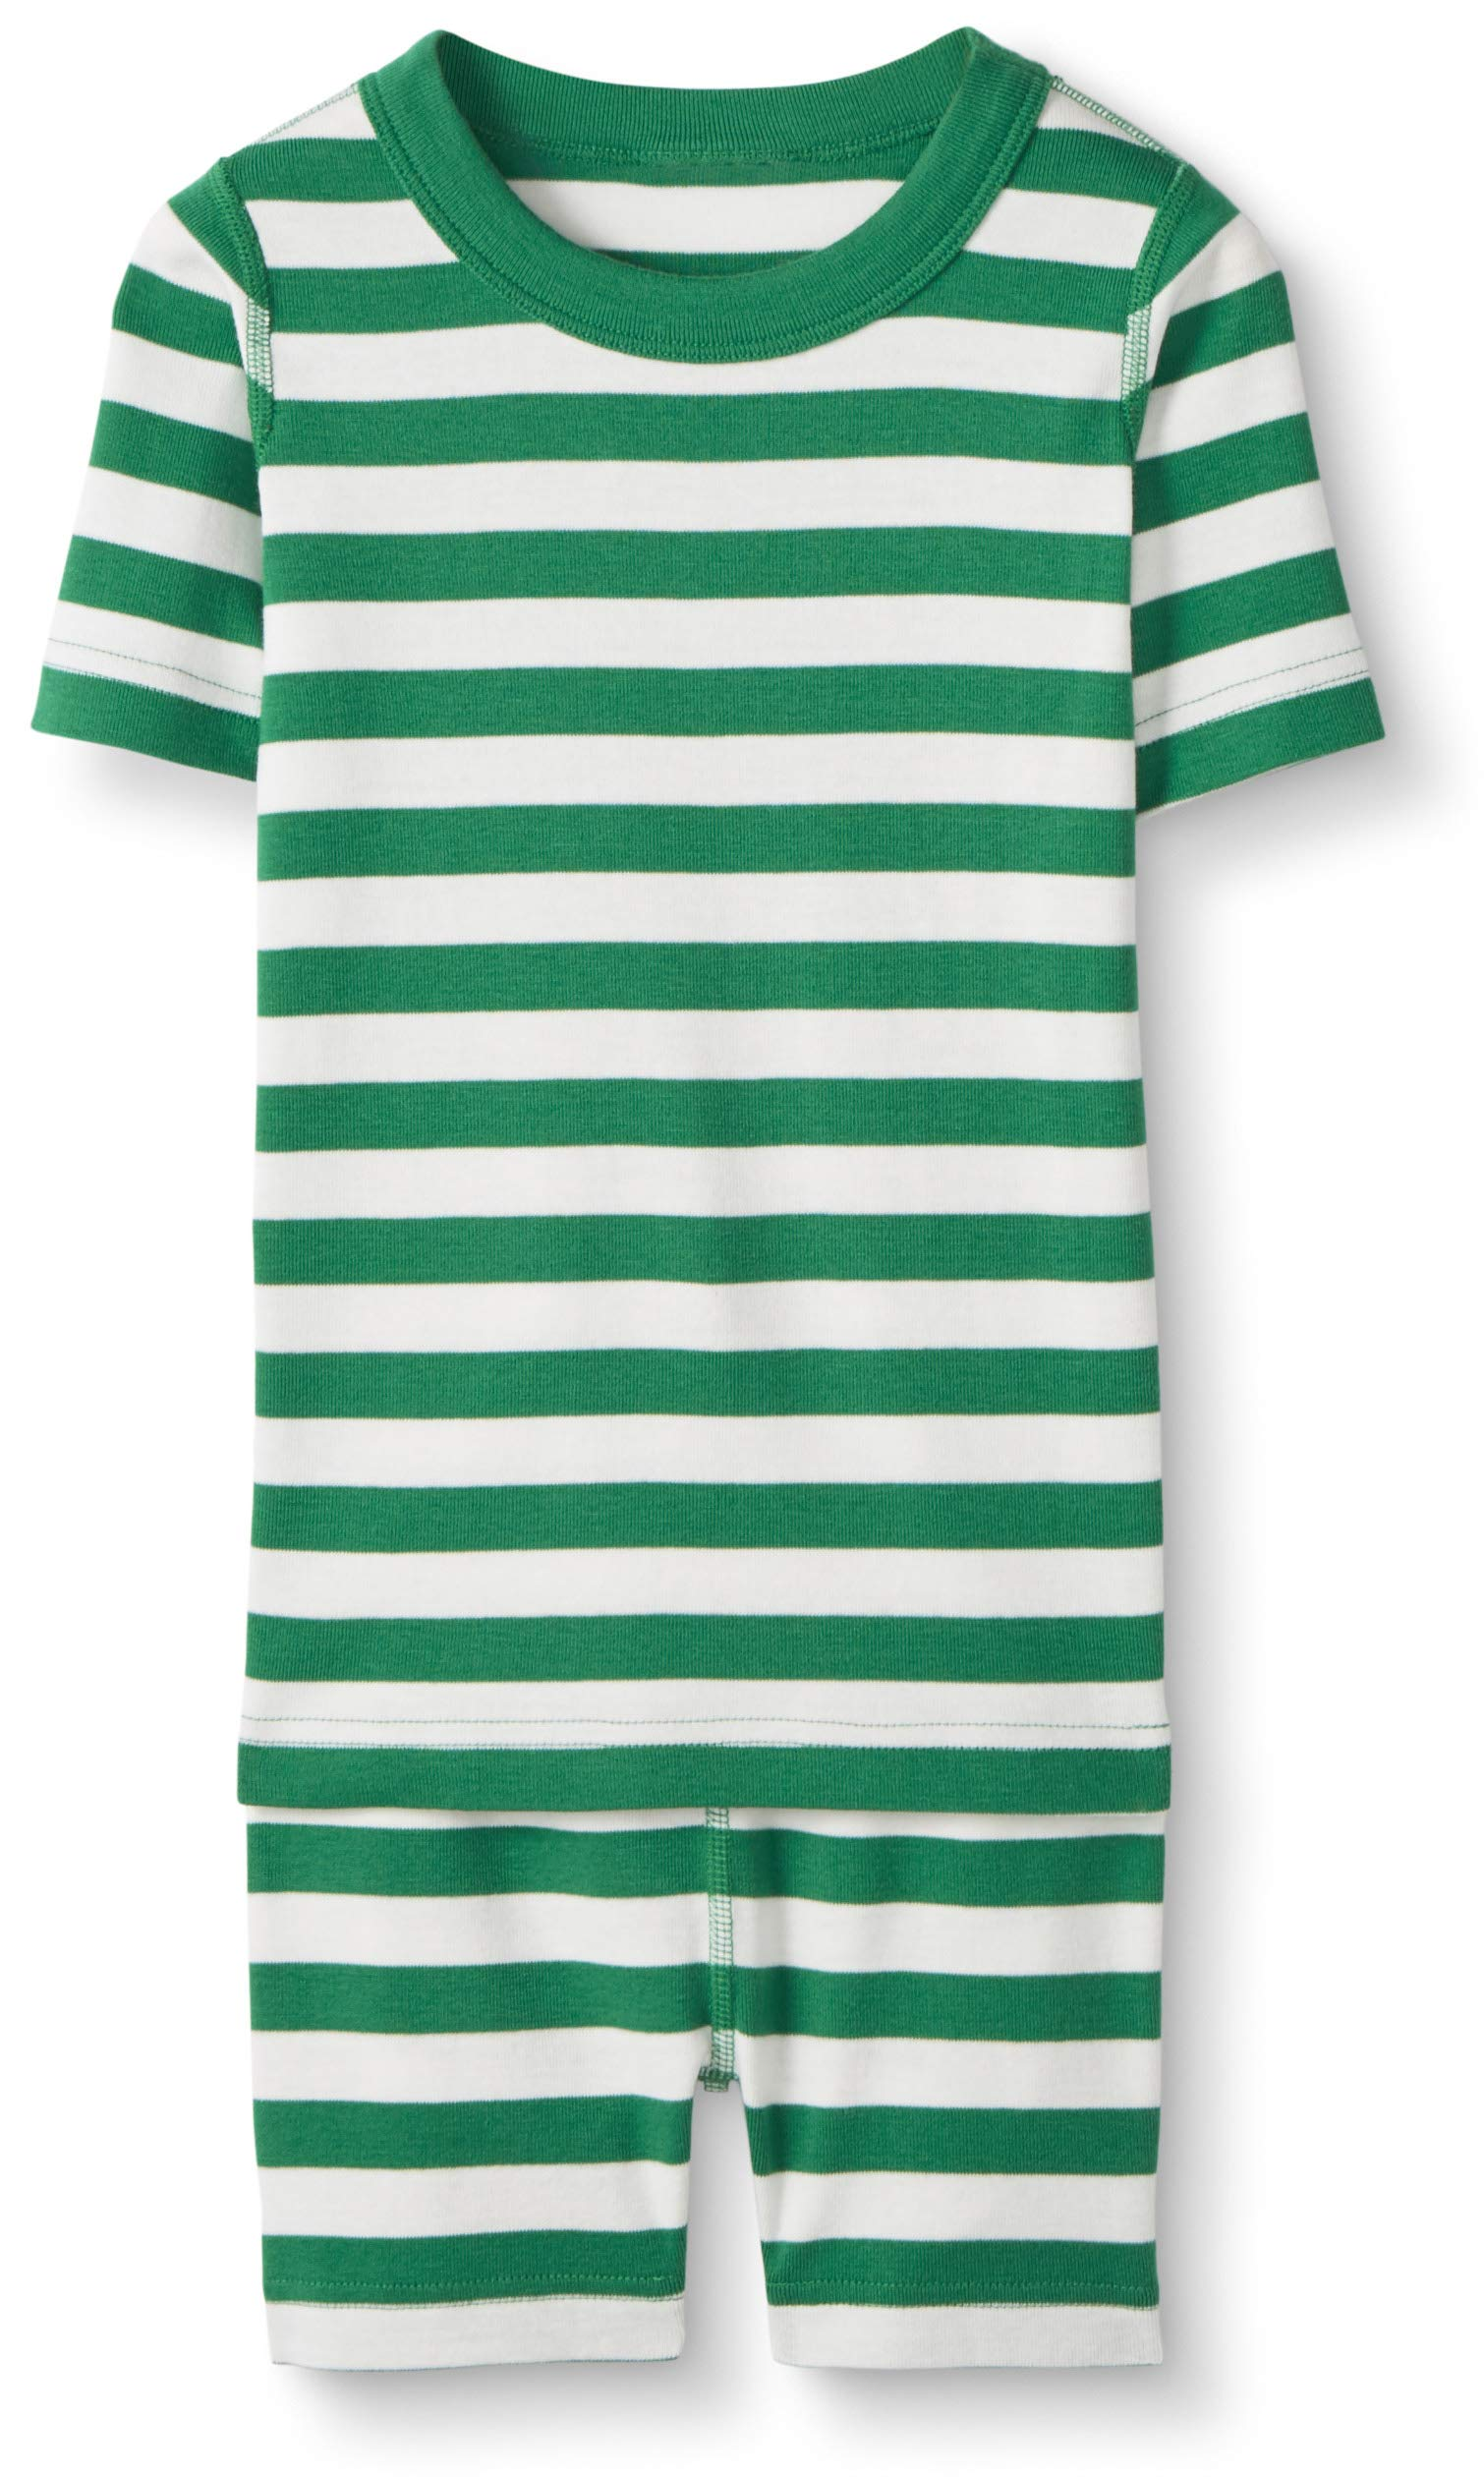 Hanna Andersson Kids Short Sleeved Pajamas in Organic Cotton, Go Green/Hanna White, Size 90 cm